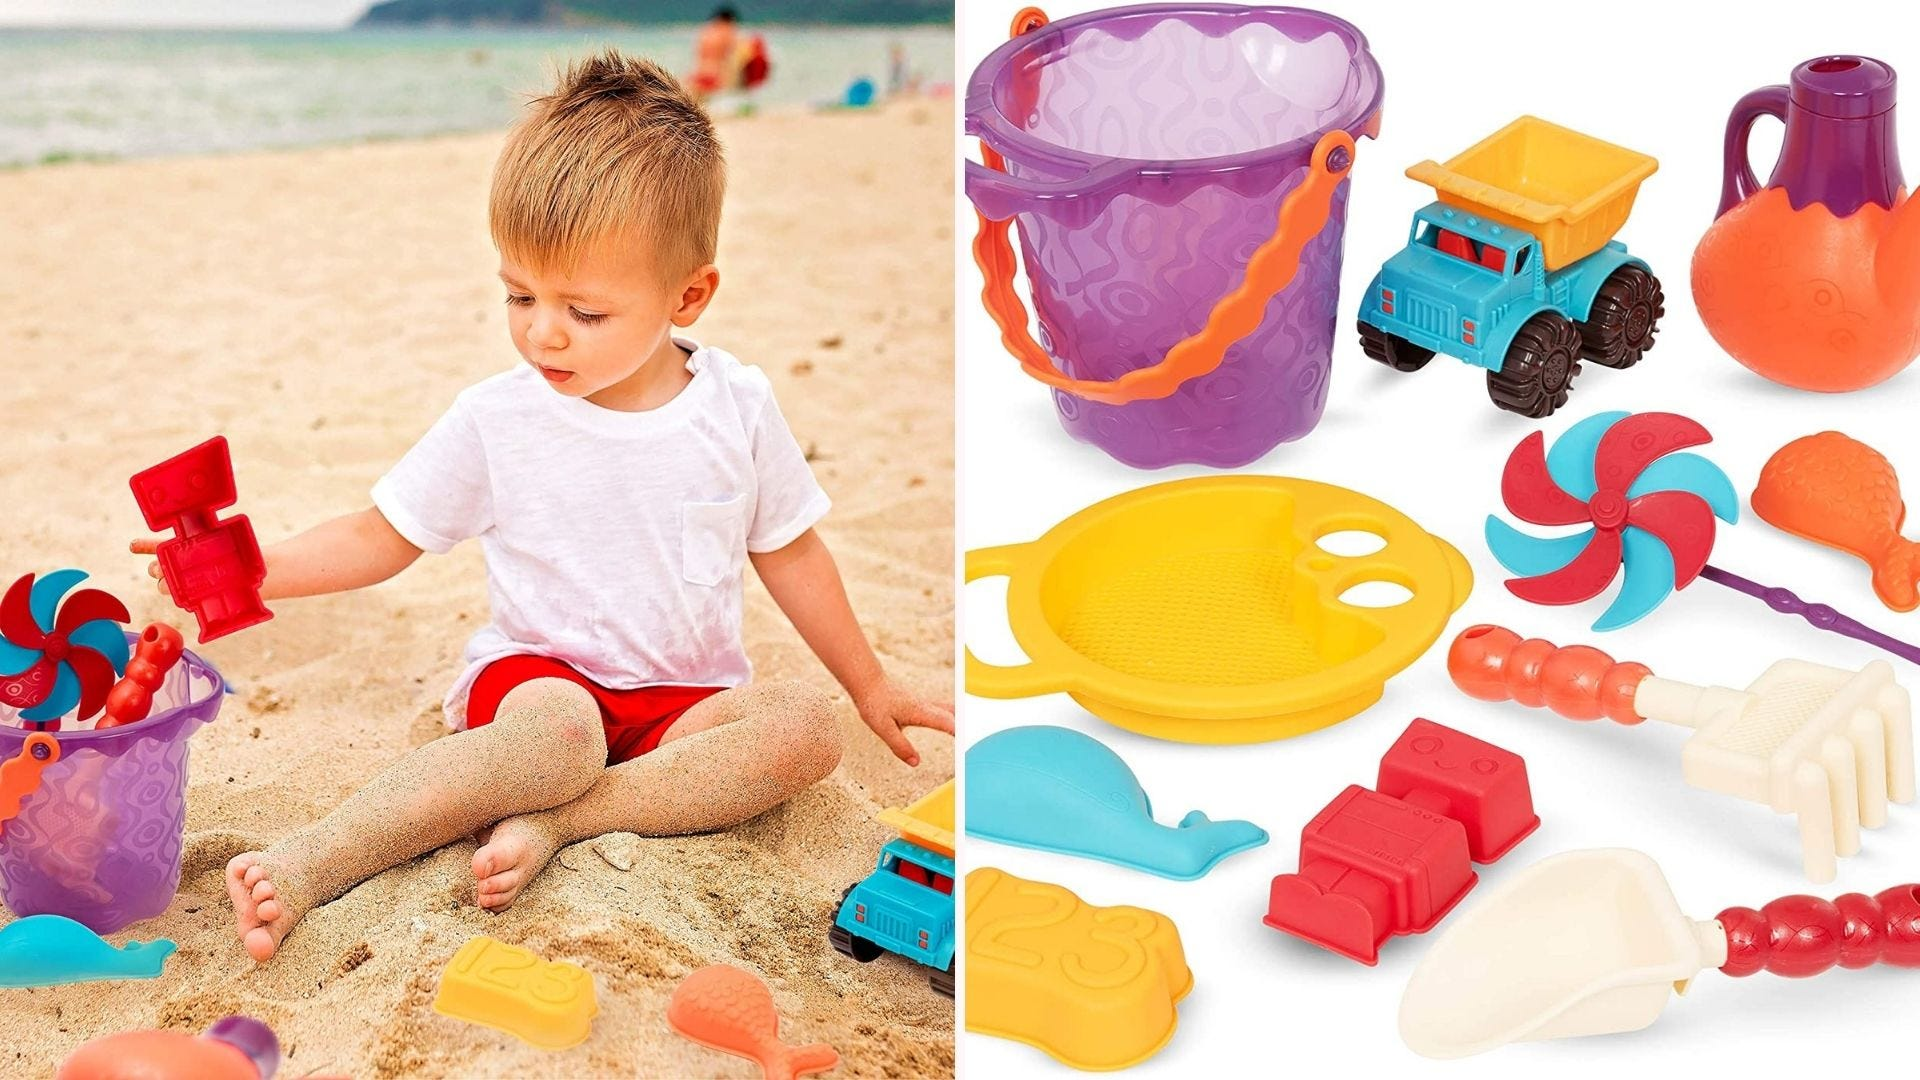 A boy at the beach playing with beach toys.